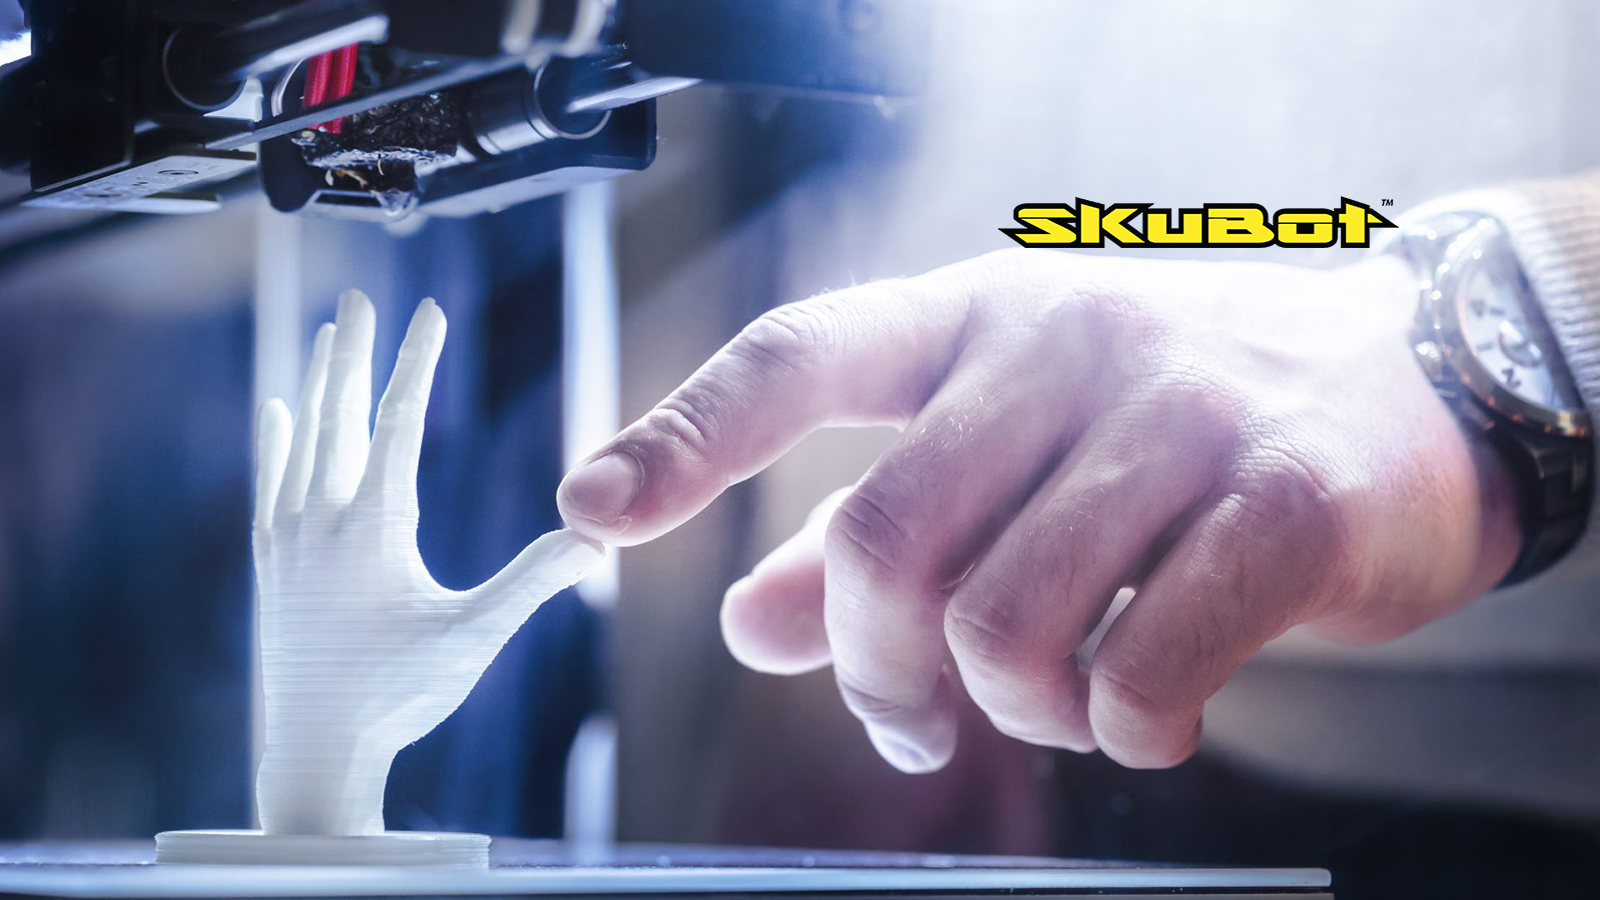 skubot powered by hp to introduce 3d scanning to identify